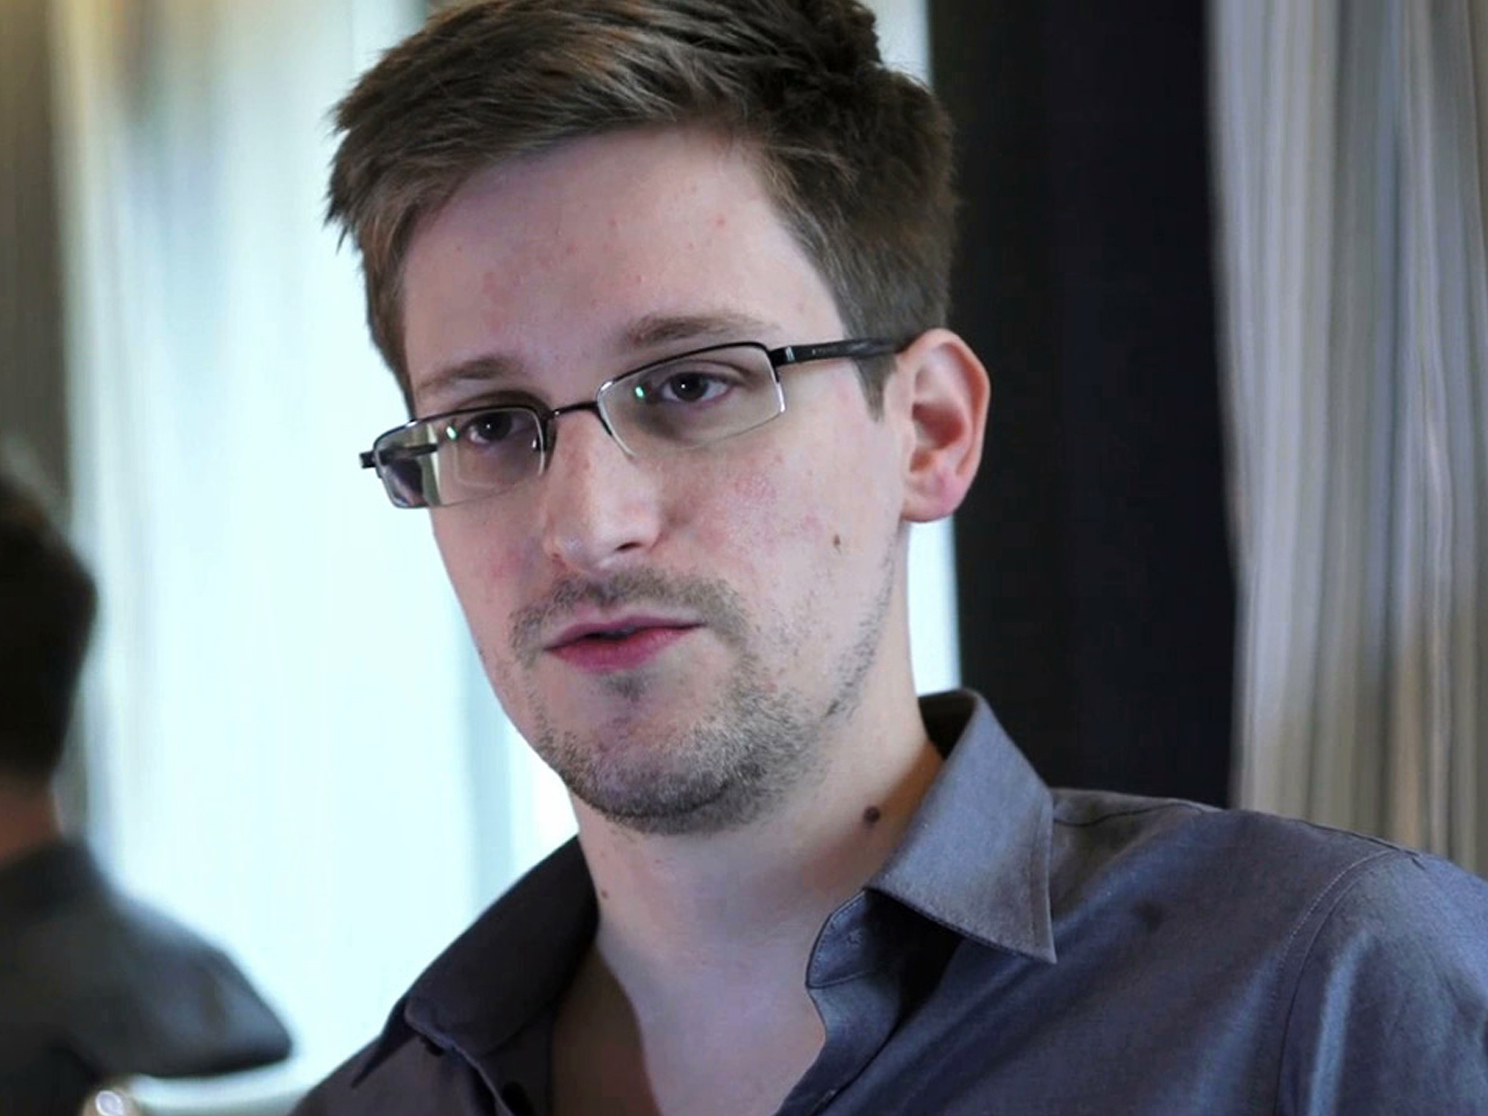 Big Data Firm Says It Can Link Snowden Data To Changed Terrorist Behavior